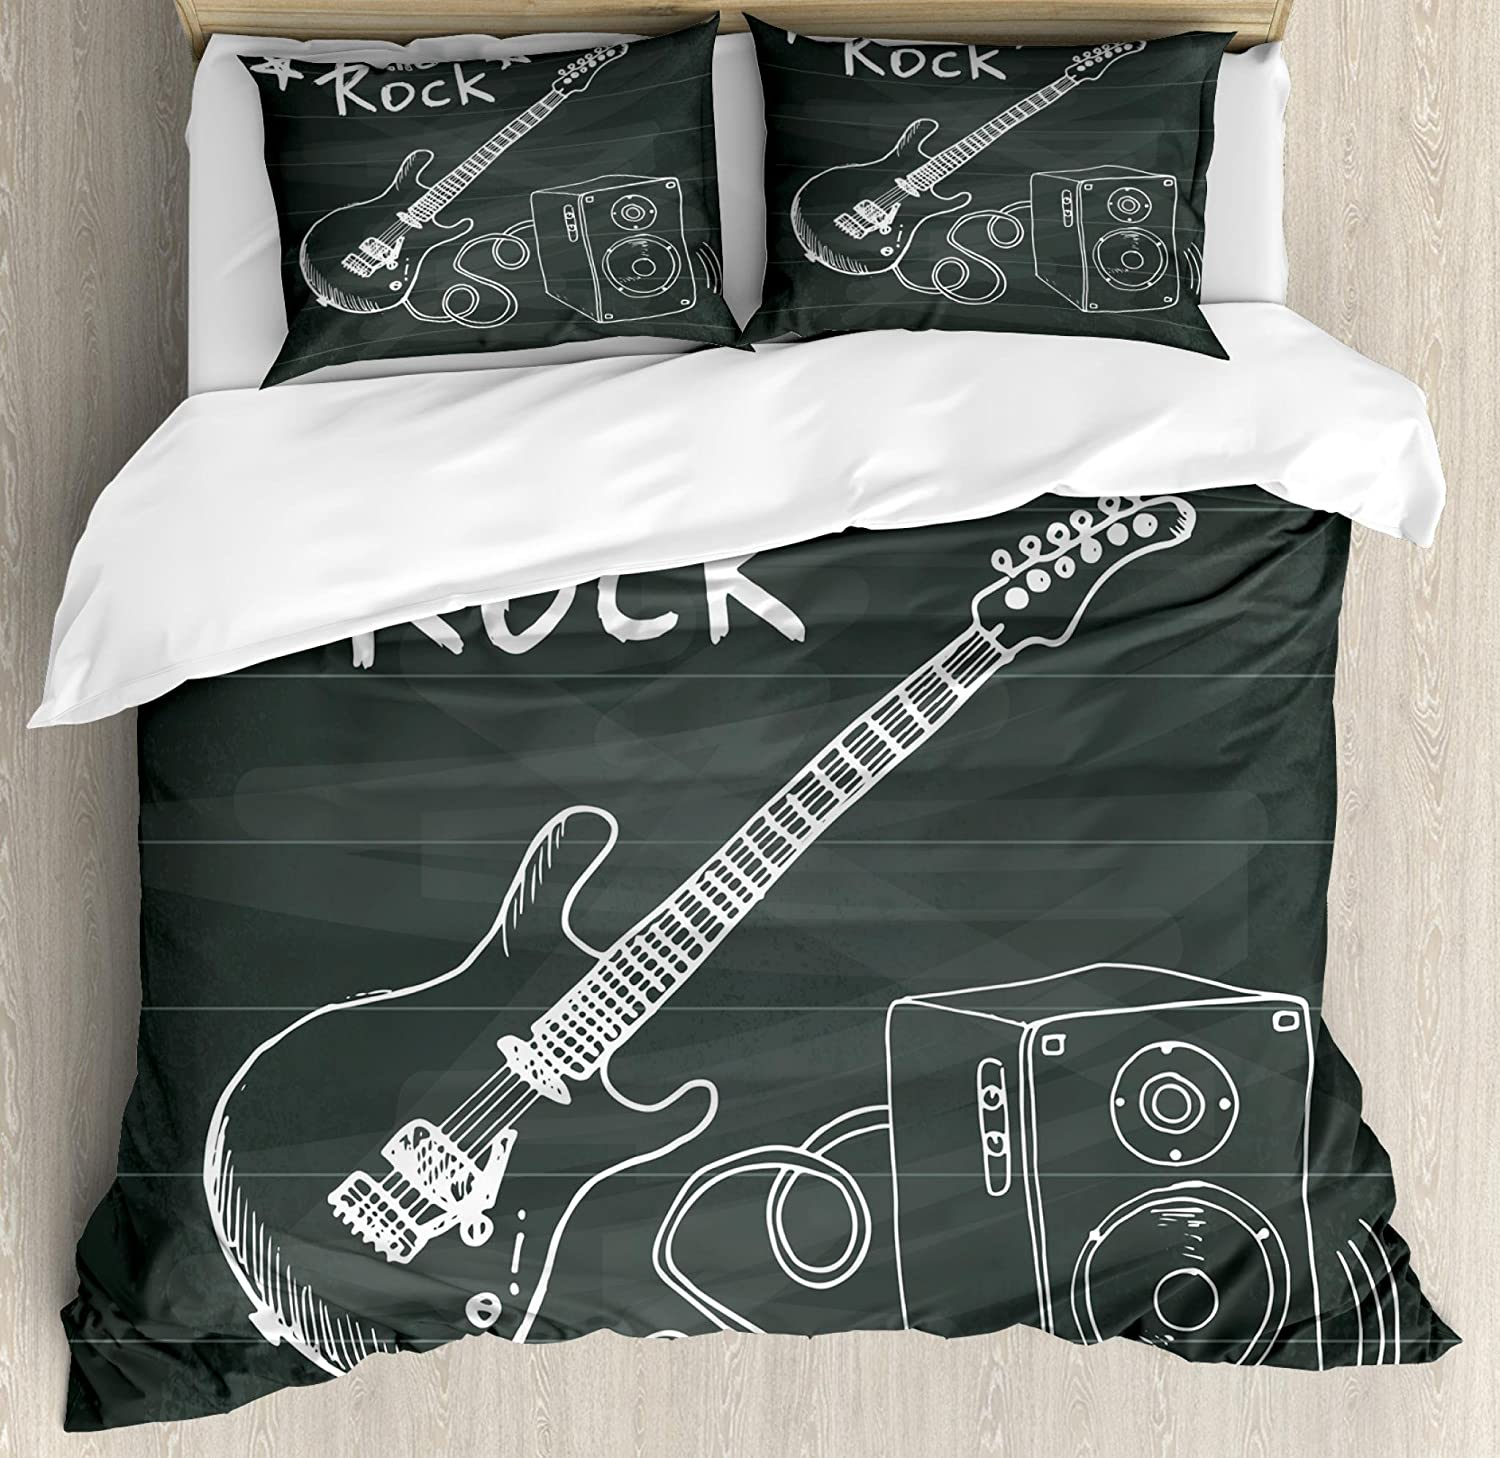 Ambesonne Guitar Duvet Cover Set, Love The Rock Music Themed Sketch Art Sound Box and Text on Chalkboard, Decorative 3 Piece Bedding Set with 2 Pillow Shams, Queen Size, Charcoal White